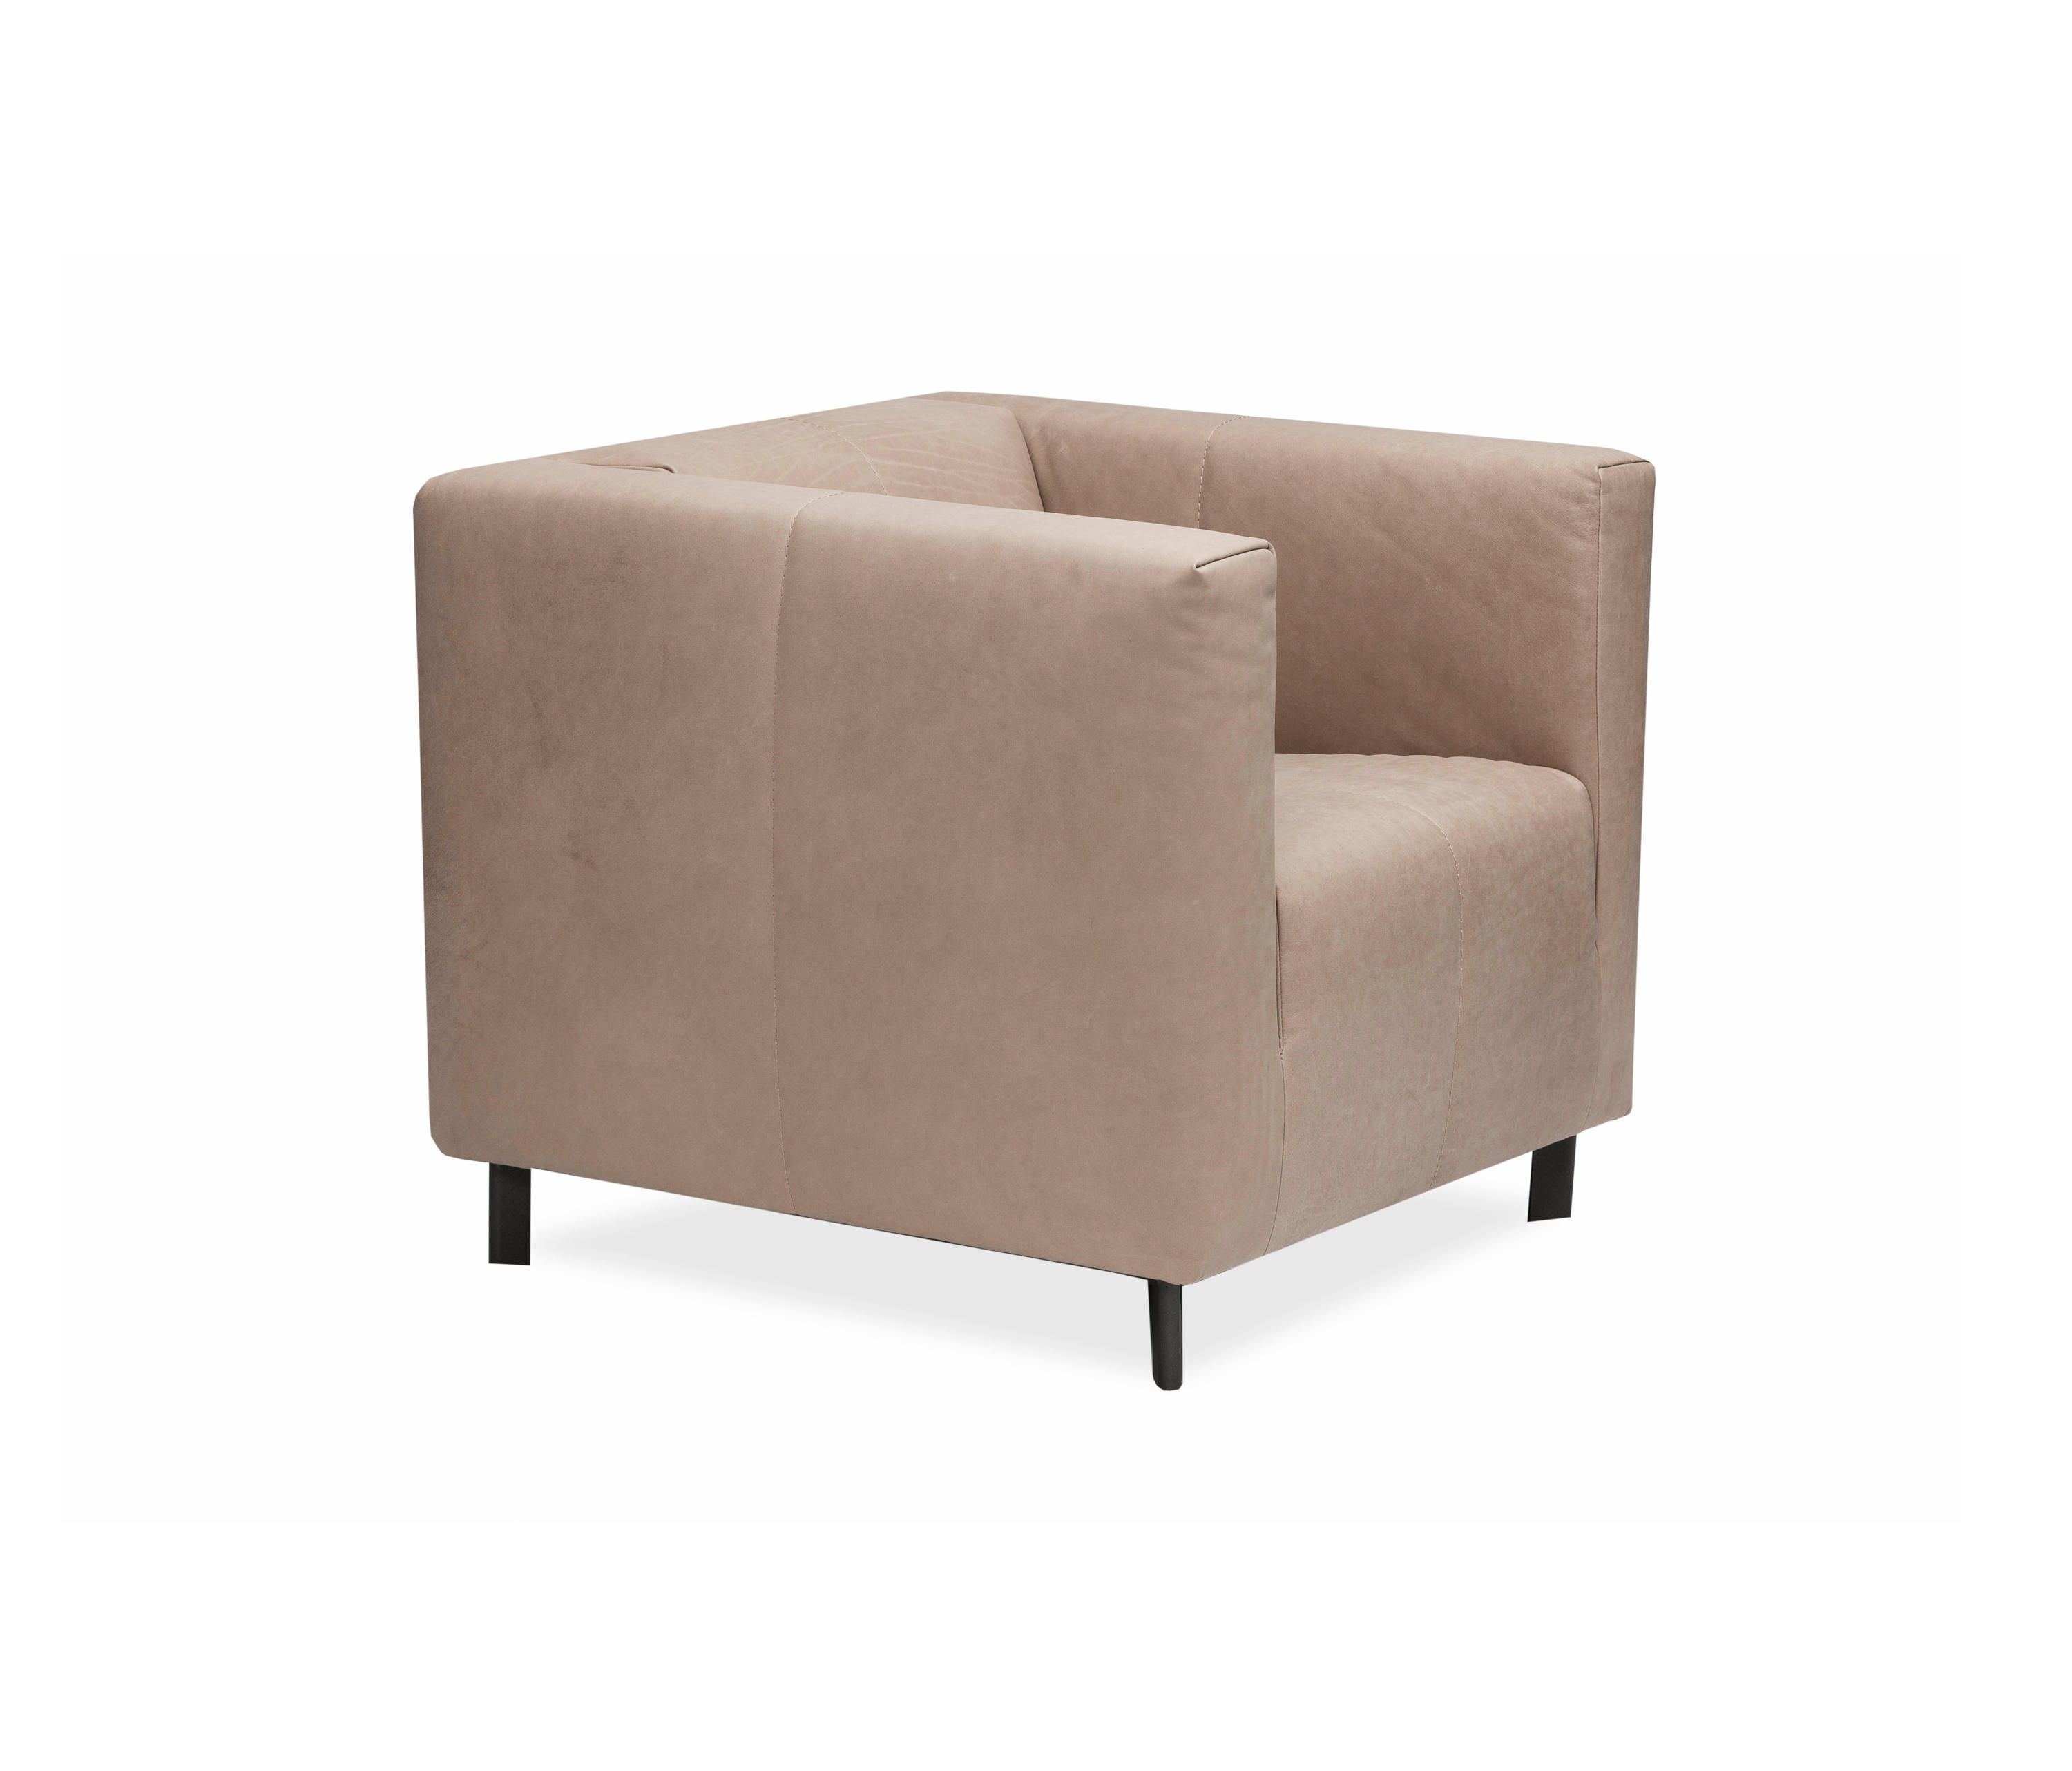 Design Bank Linteloo.Desire Armchair Mobilier Design Architonic